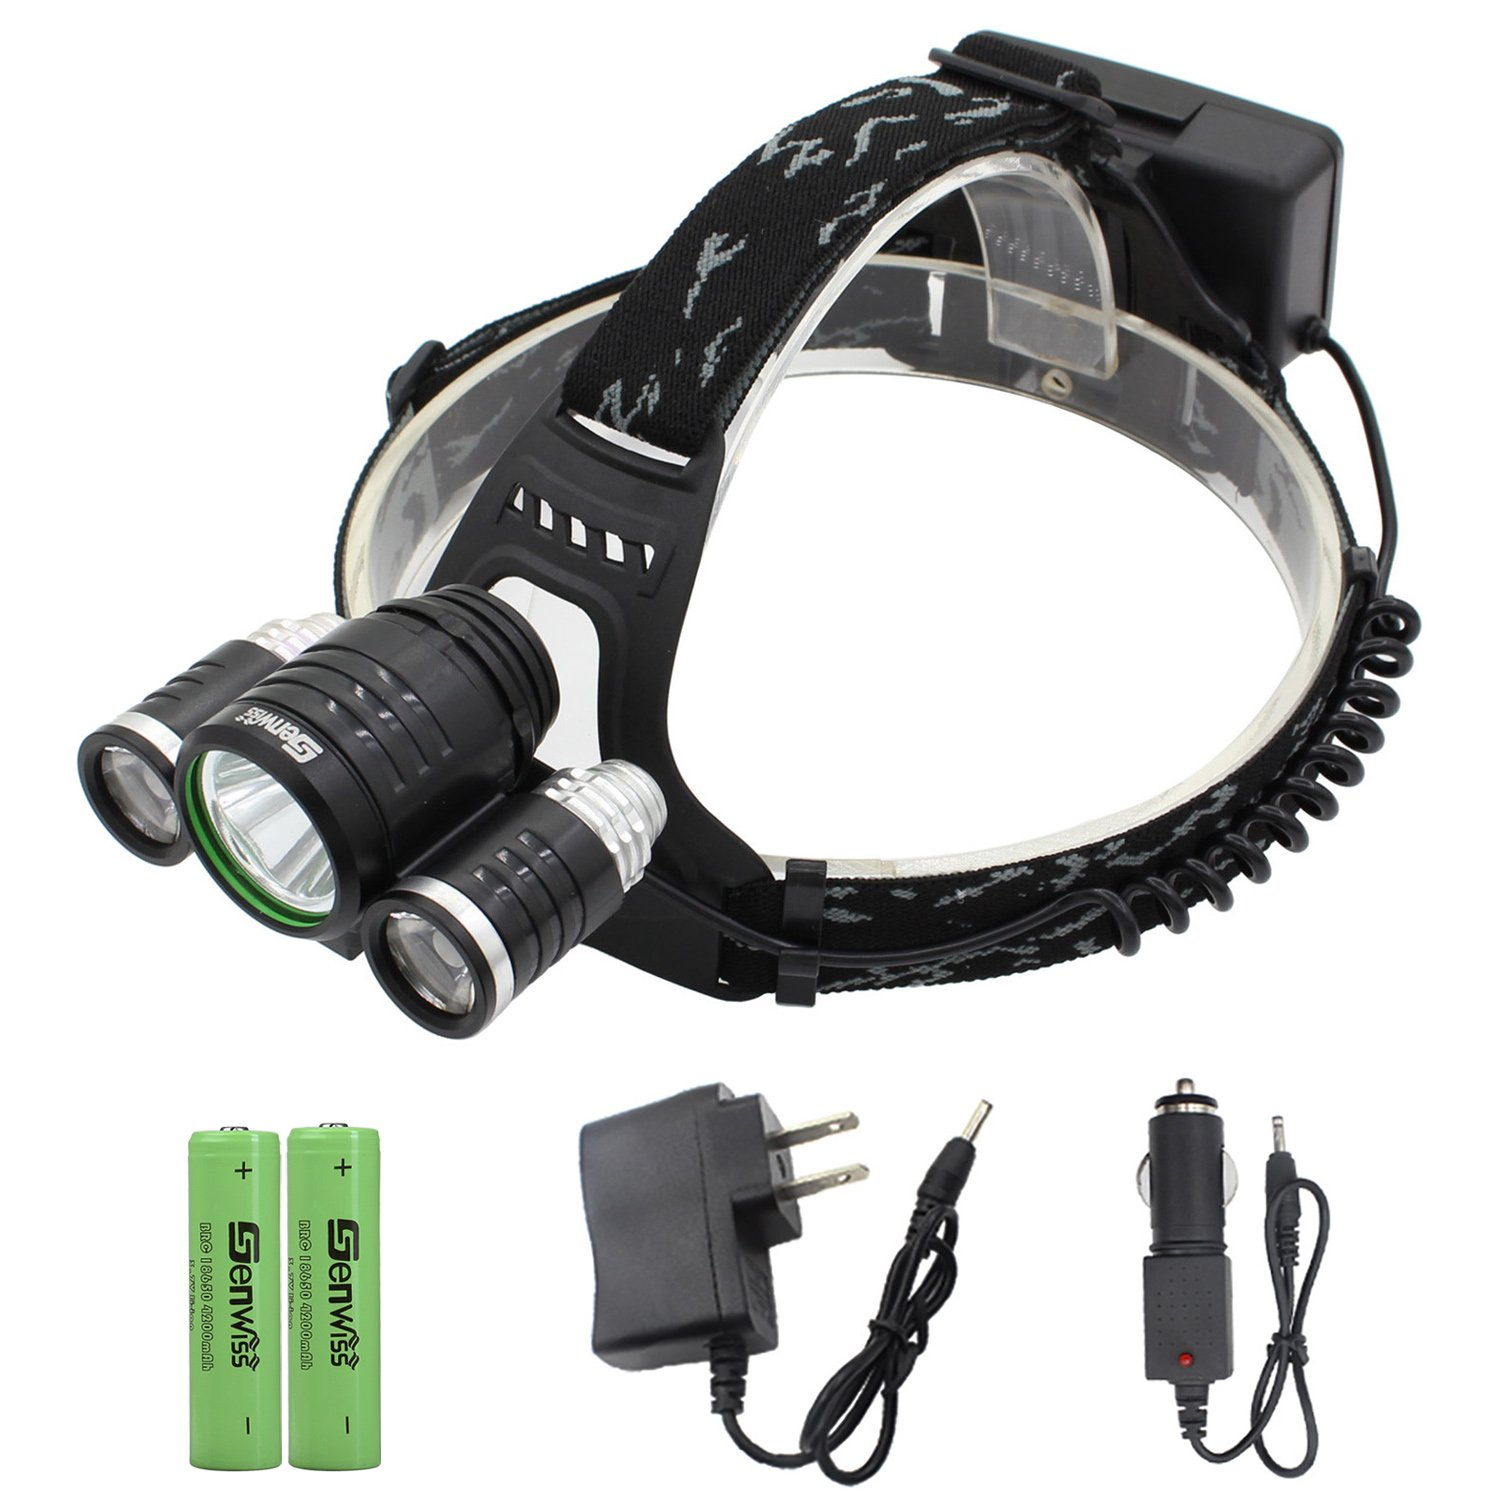 Genwiss 2 in 1 Super Bright 5000 lumen 4 Modes XML-T6 XPE R2 LED Headlamp Headlight &Bike Bicycle Flashlight for Camping Biking Working Hunting Fishing Riding Walking(With Batteries and charger)